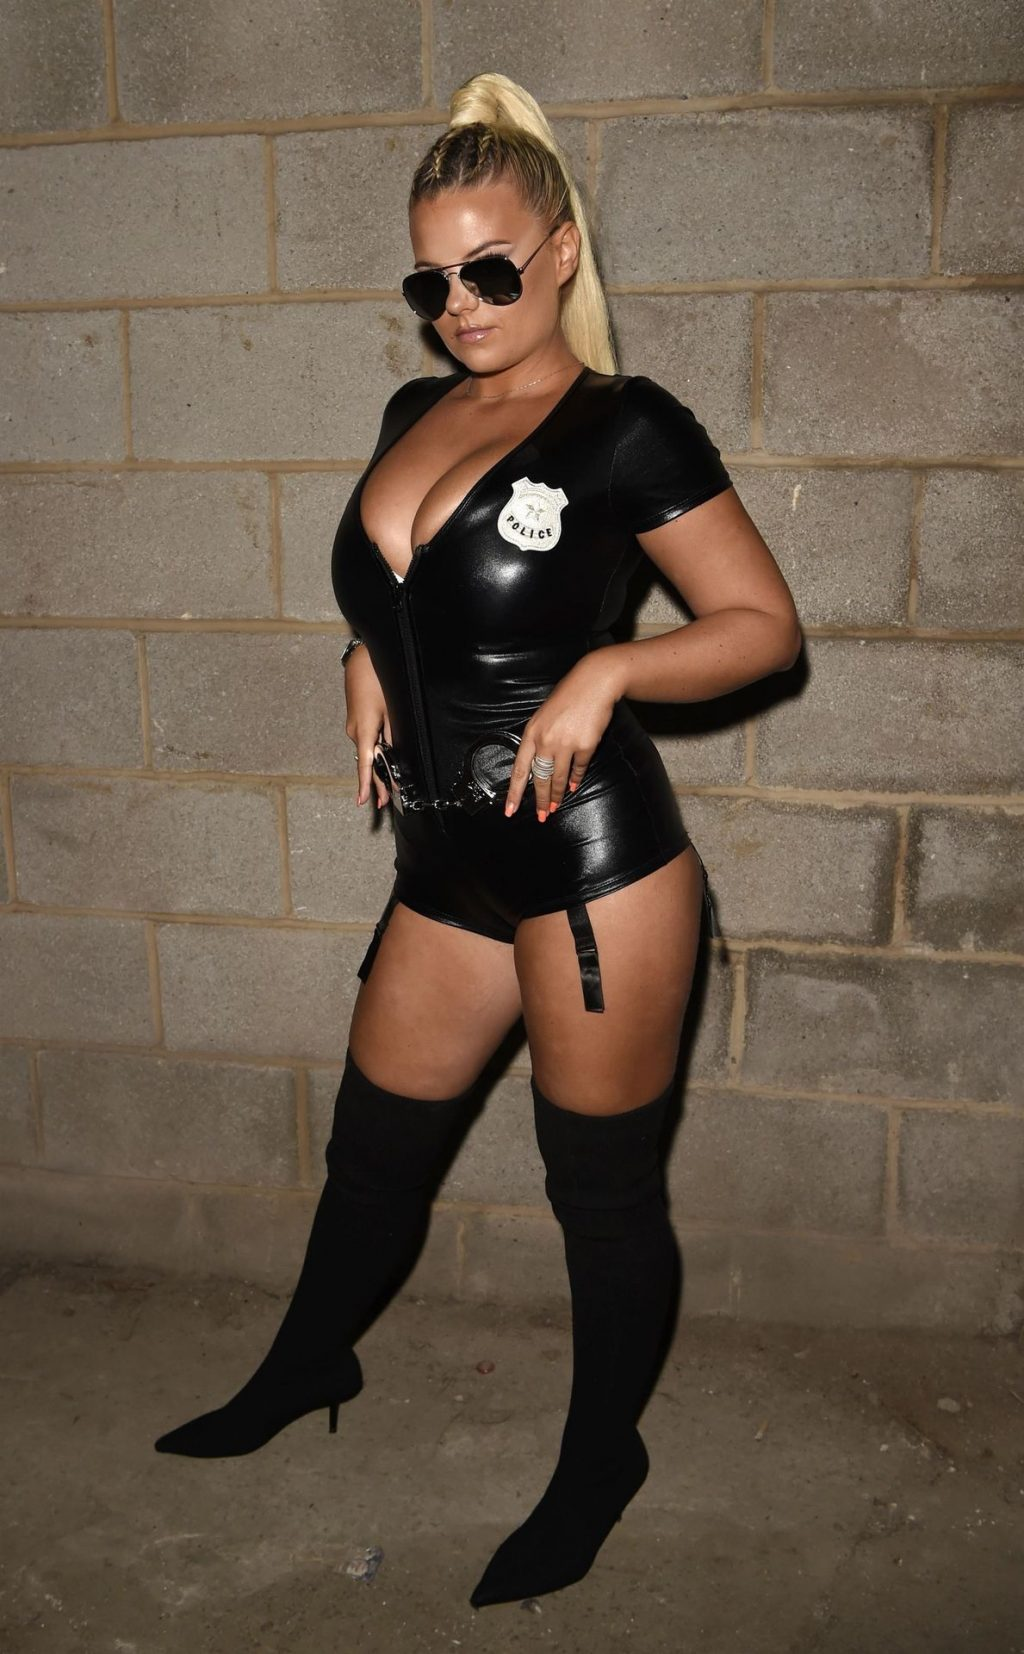 Apollonia llewellyn is Pictured Wearing a Sexy Halloween Police Outfit (33 Photos)